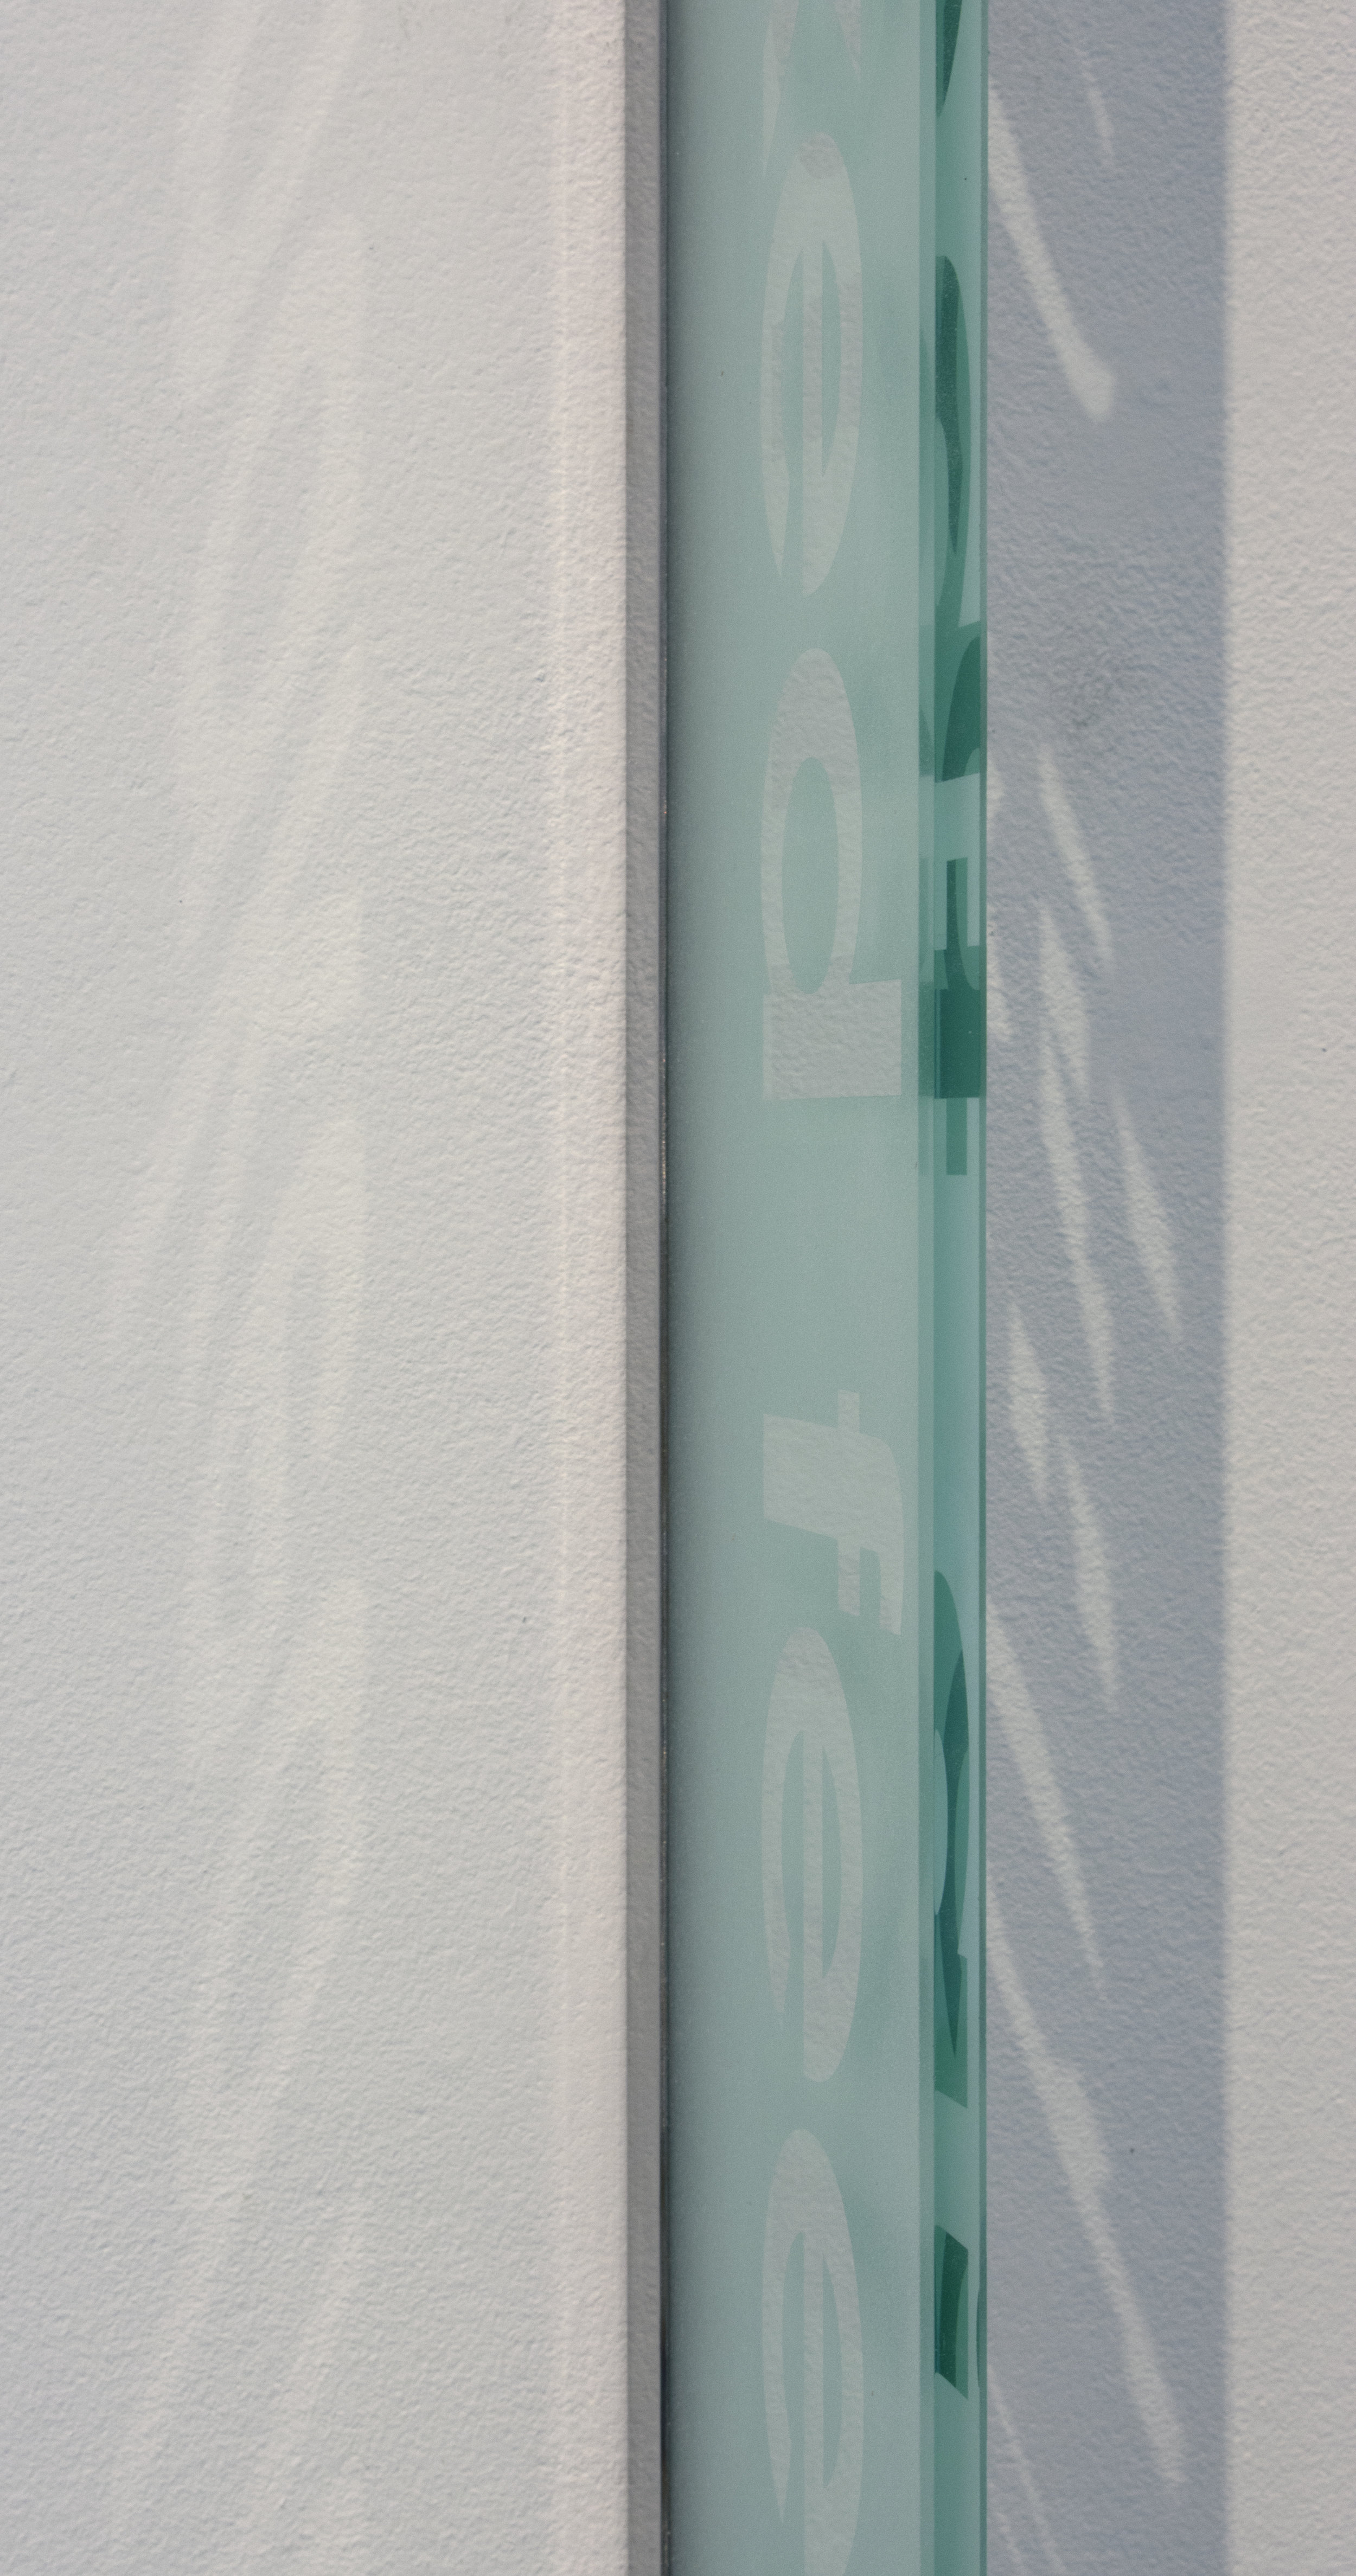 """no title (from the  to be a vision  series)   Glass and Steel   Panels each 36"""" x 8"""" x 3/8""""  2019"""